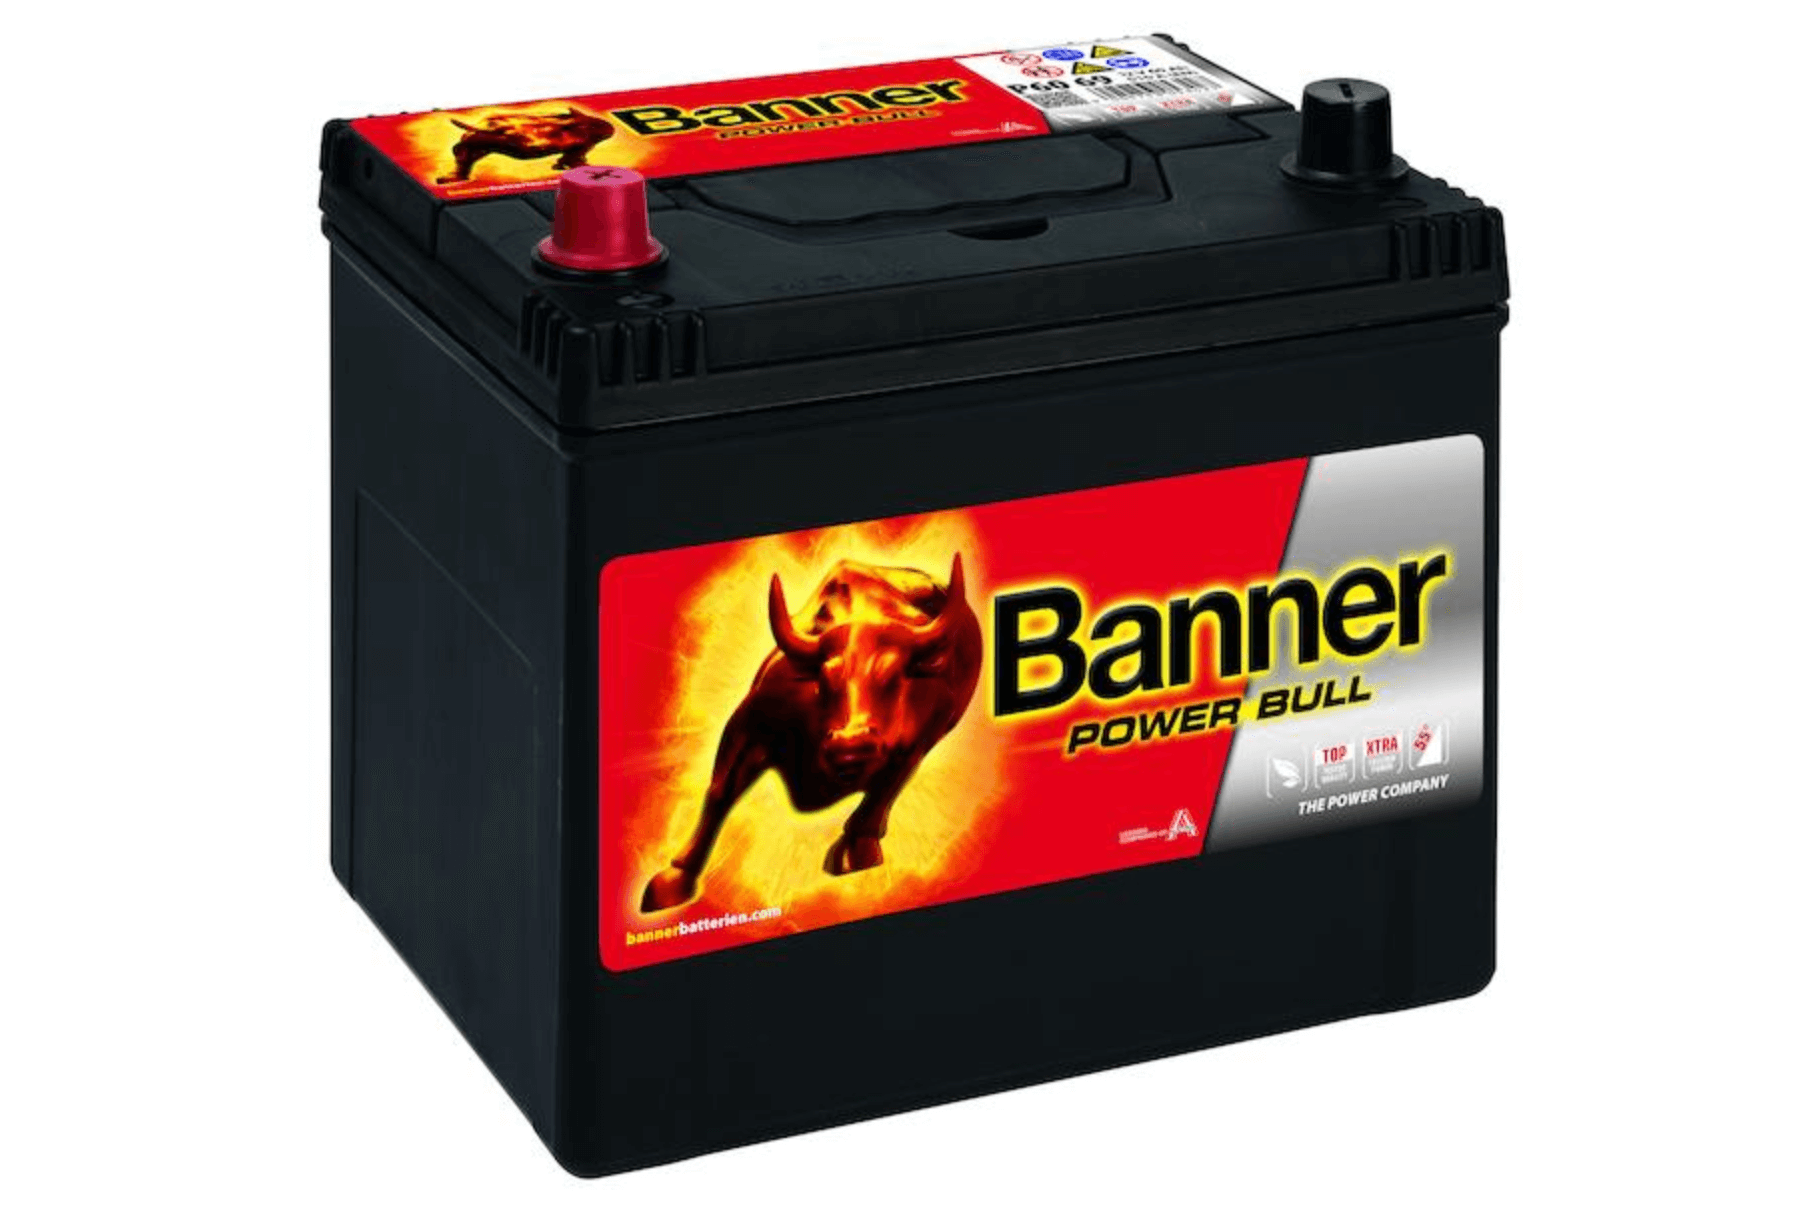 Banner Power Bull 12V 60Ah 480A - plus vlevo